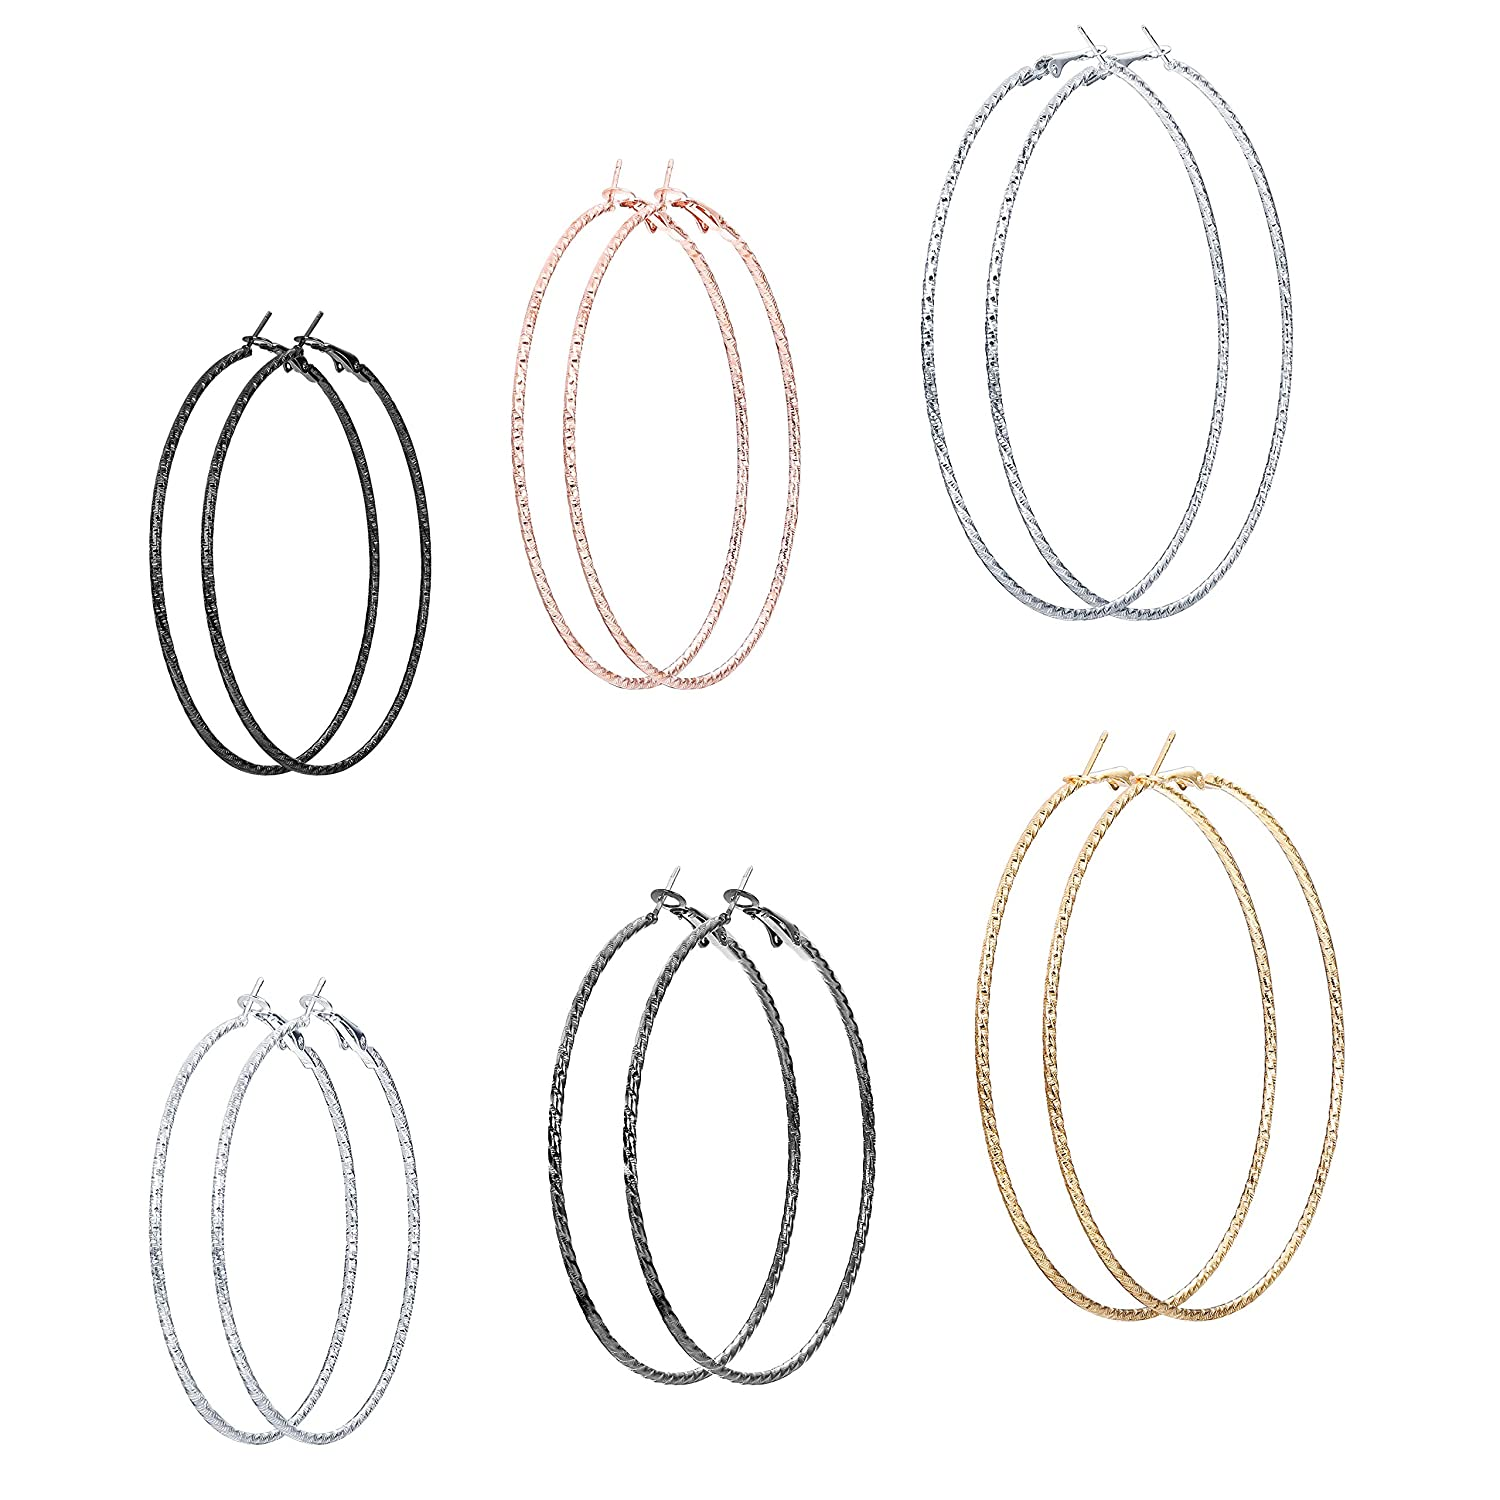 Milacolato 6 Pairs Big Twisted Hoop Earrings for Women Girls Multi-sizes Infinity Endless Earrings QT-L-E00014-6pairs